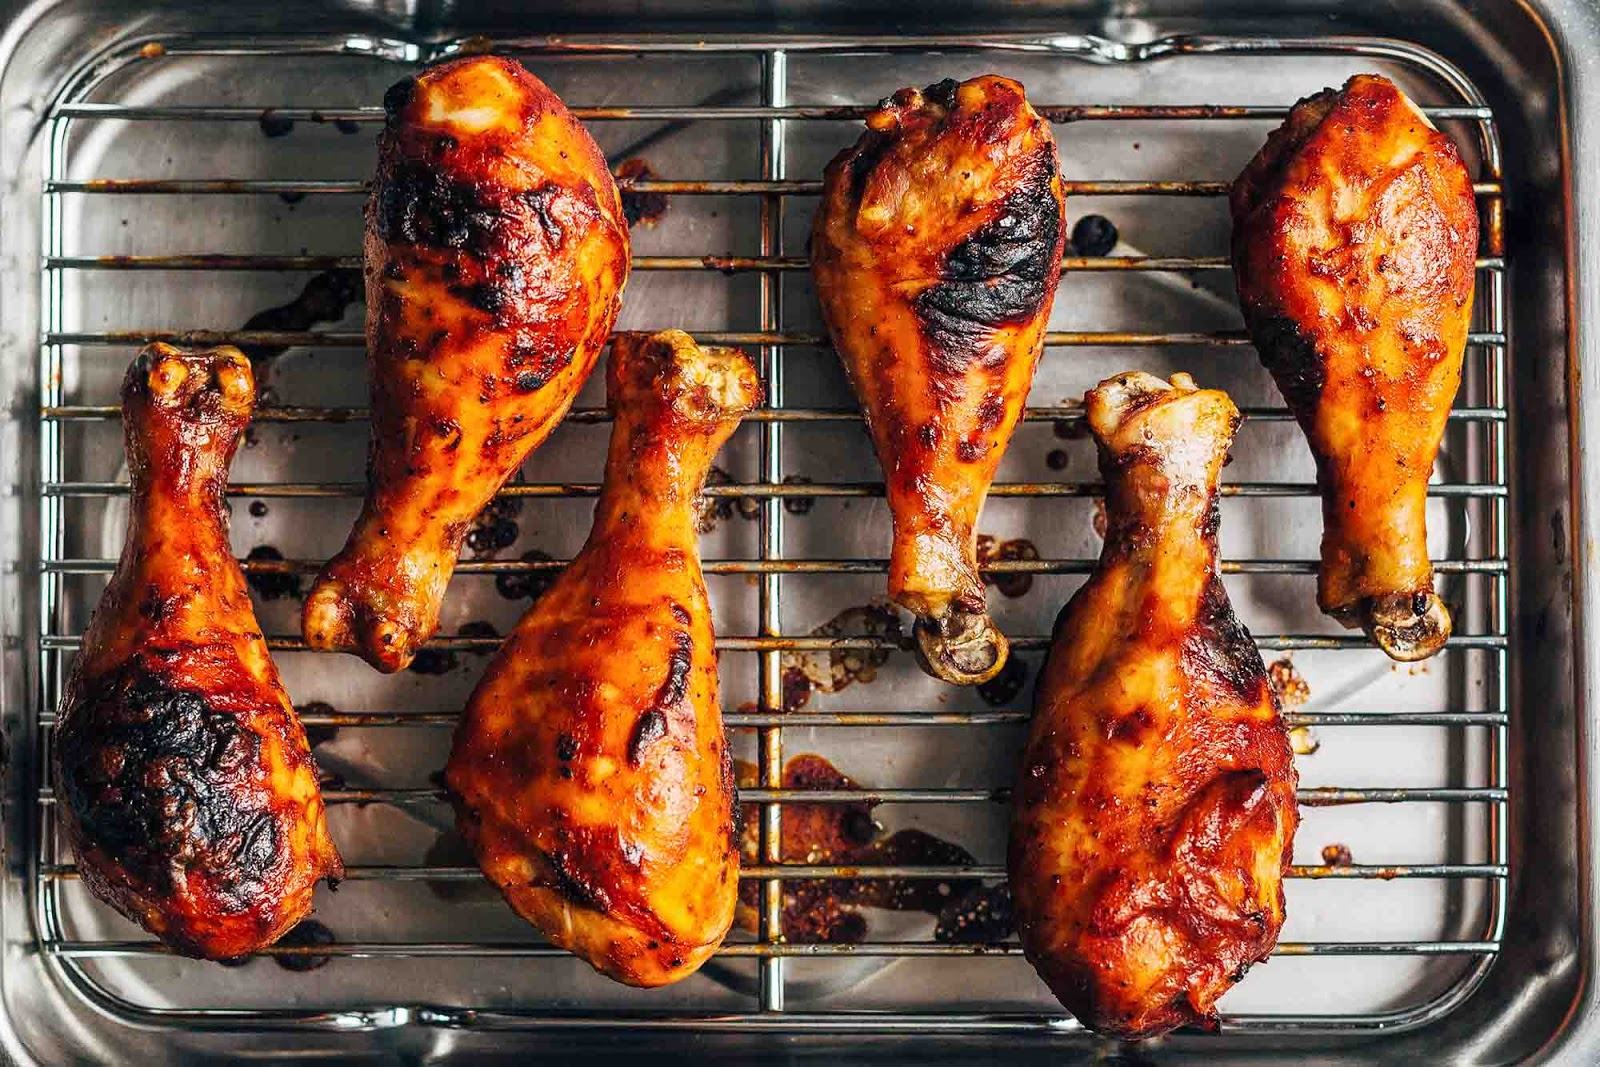 How Long To Bake Cook BBQ Steak Chicken Legs , Wings, Breast In Oven?